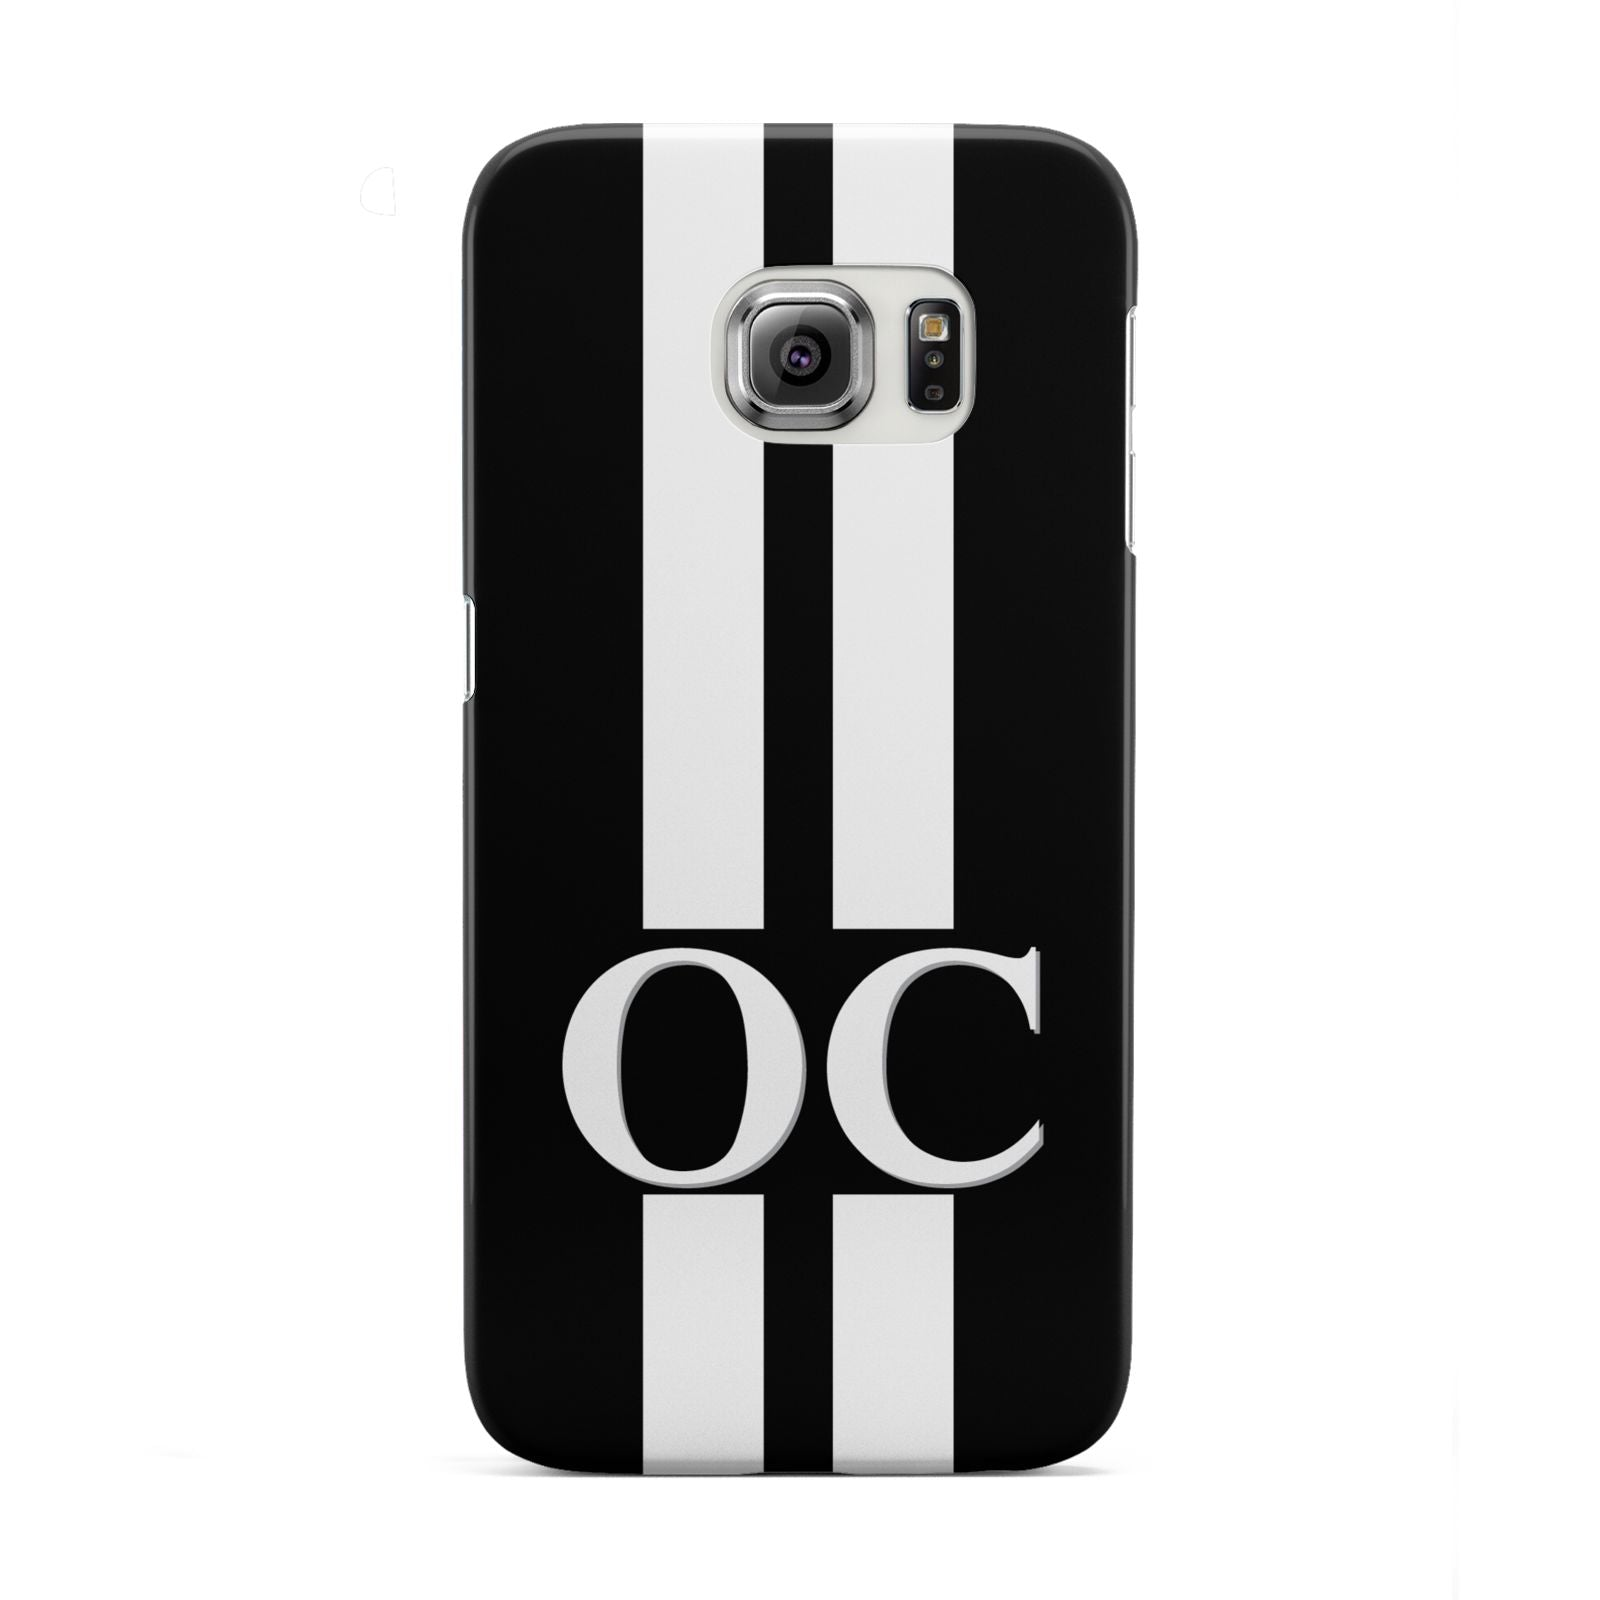 Black Personalised Initials Samsung Galaxy S6 Edge Case